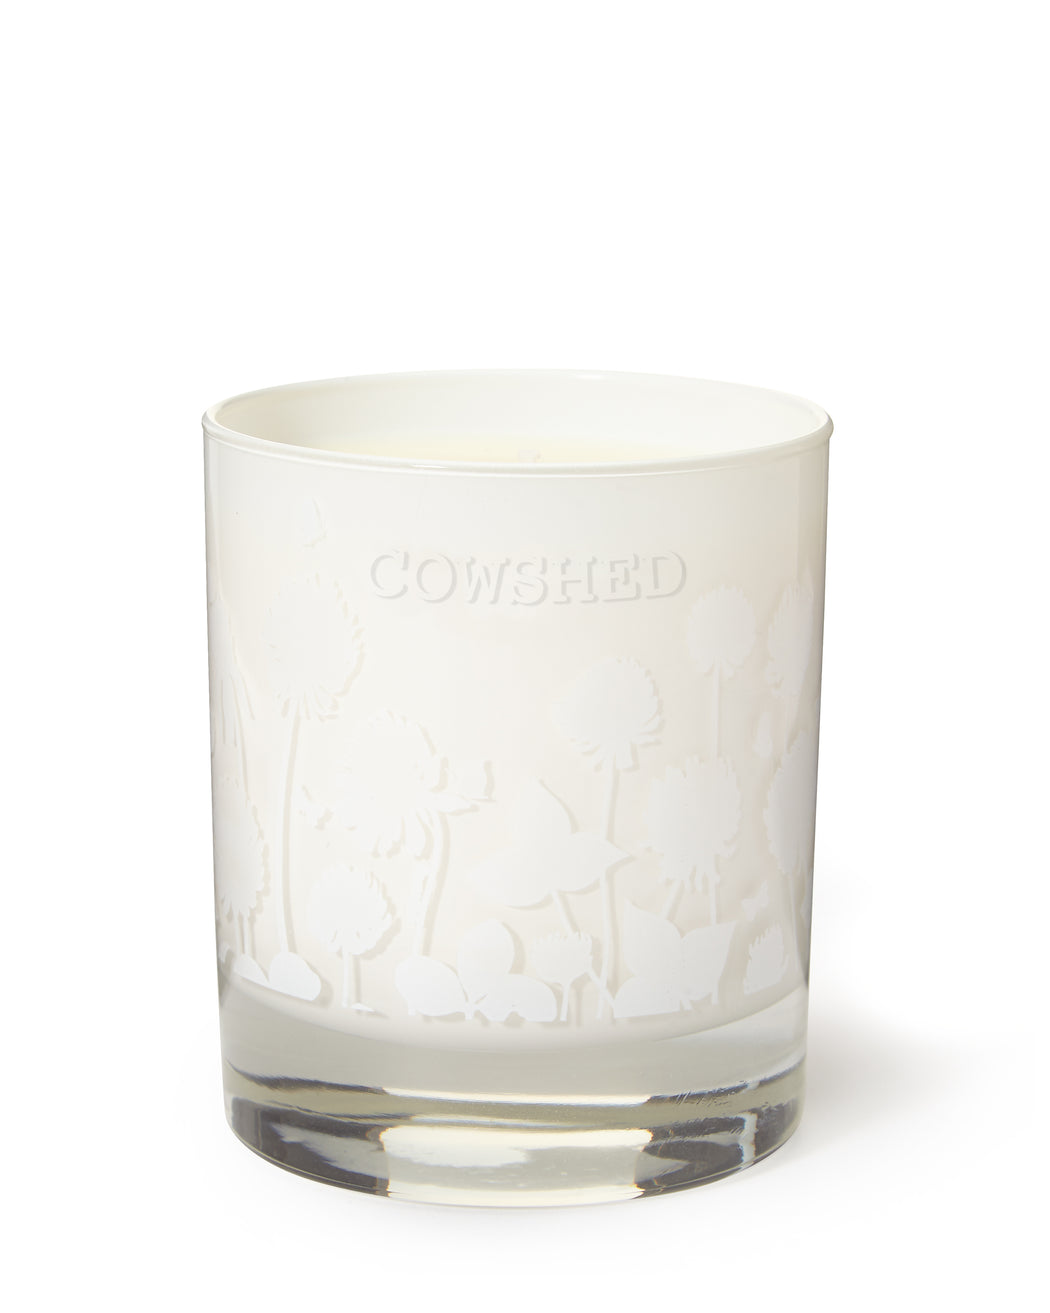 Soothing Room Candle | Lazy Cow